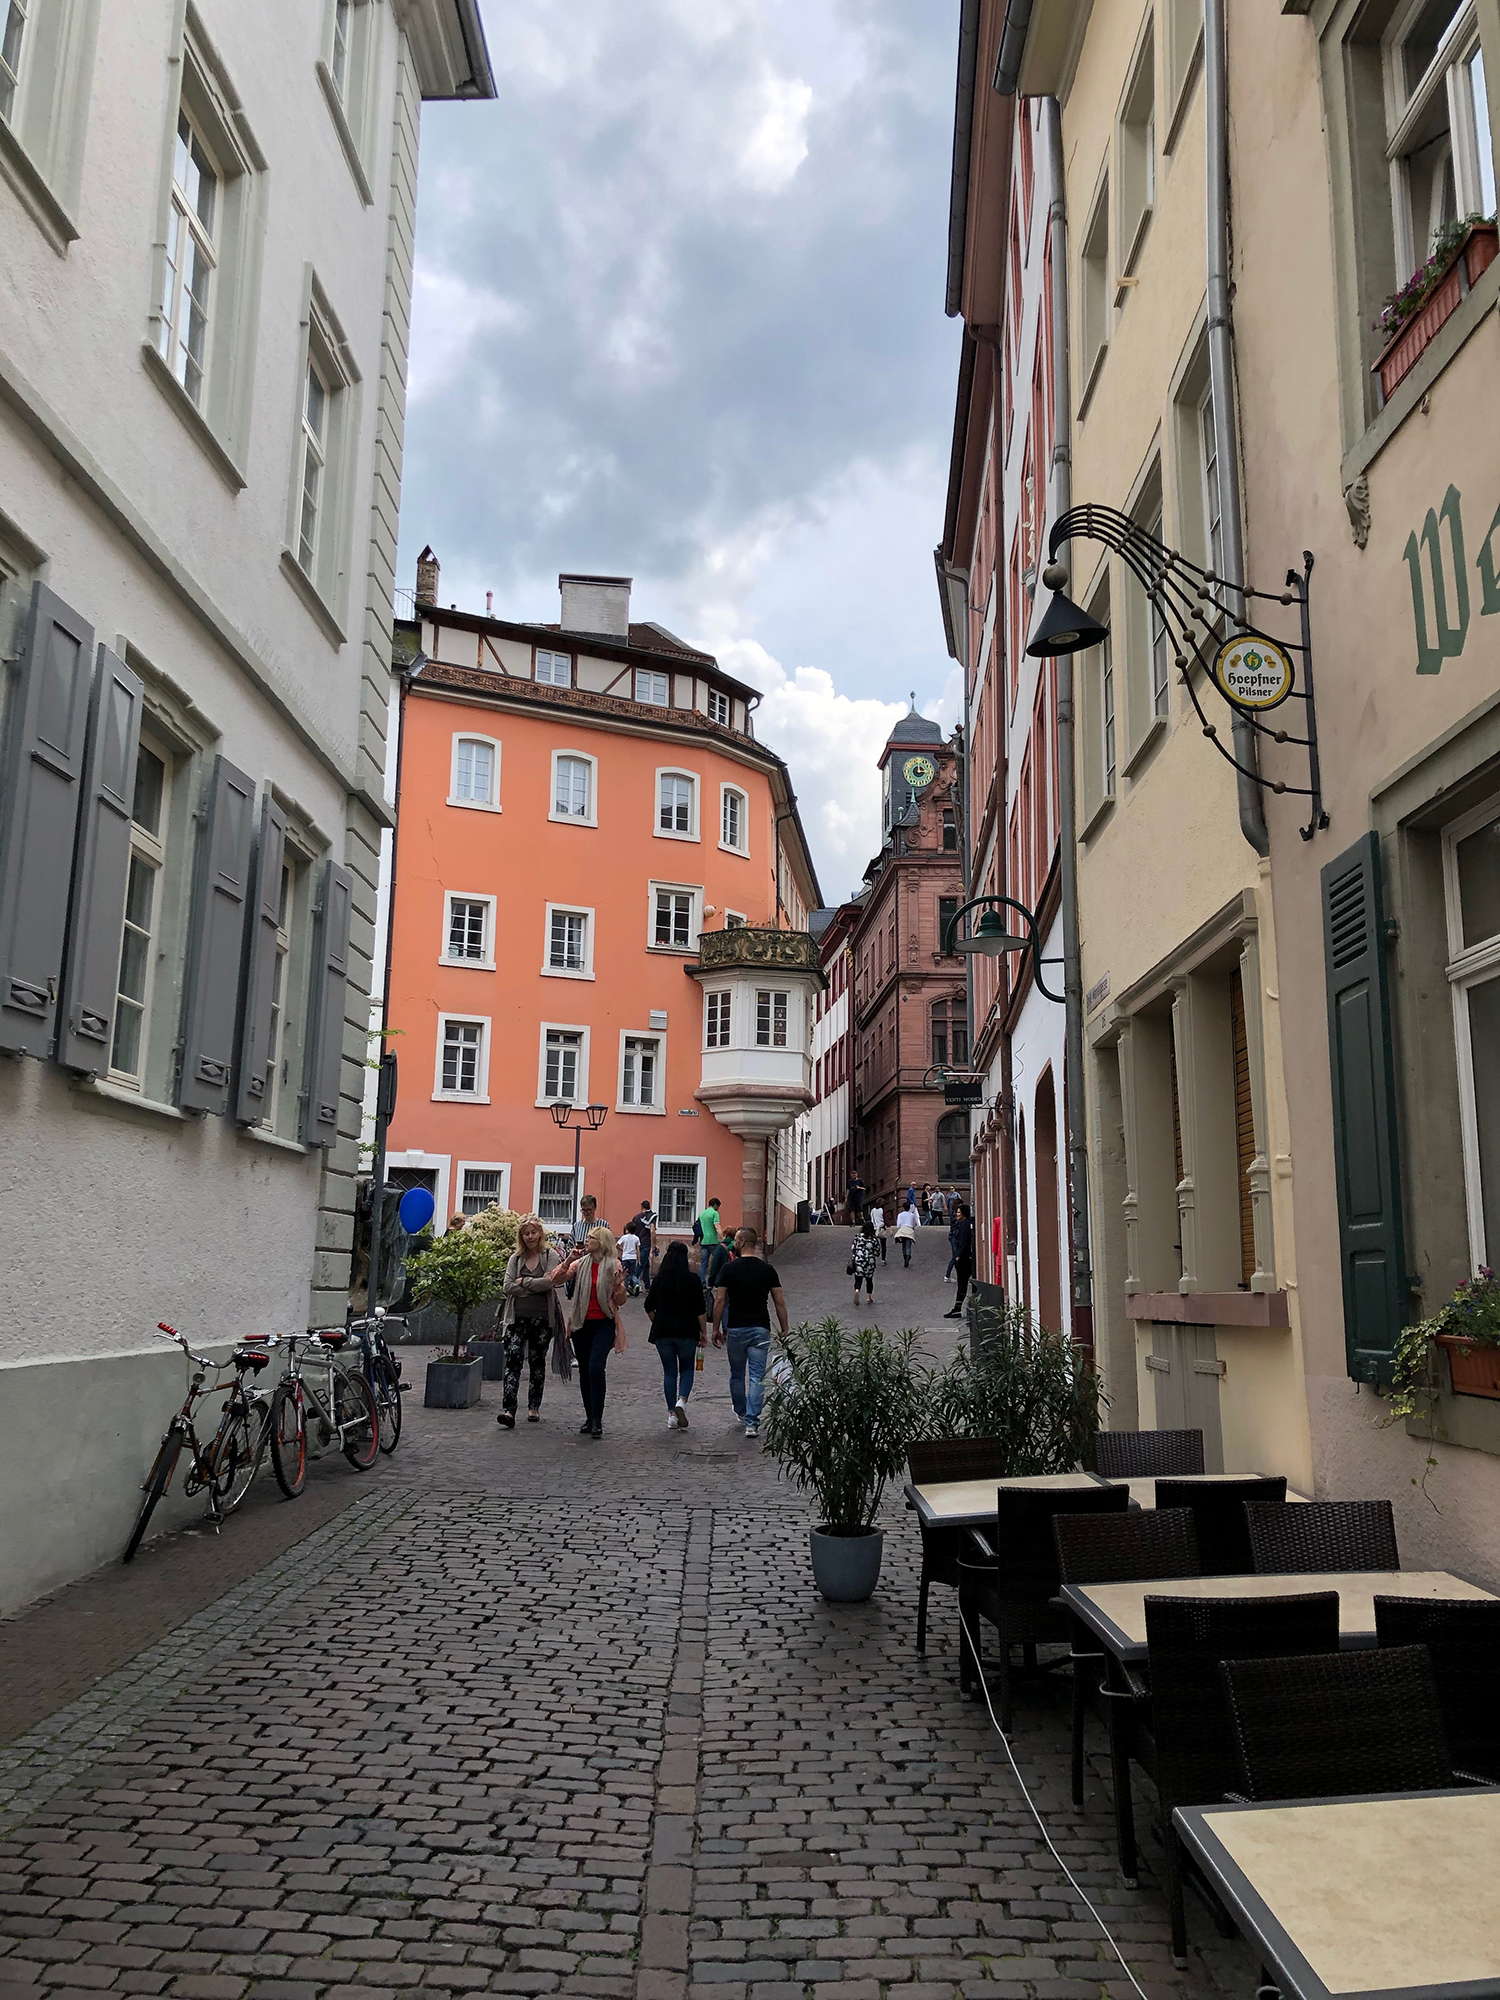 streets-walk-germany.jpeg